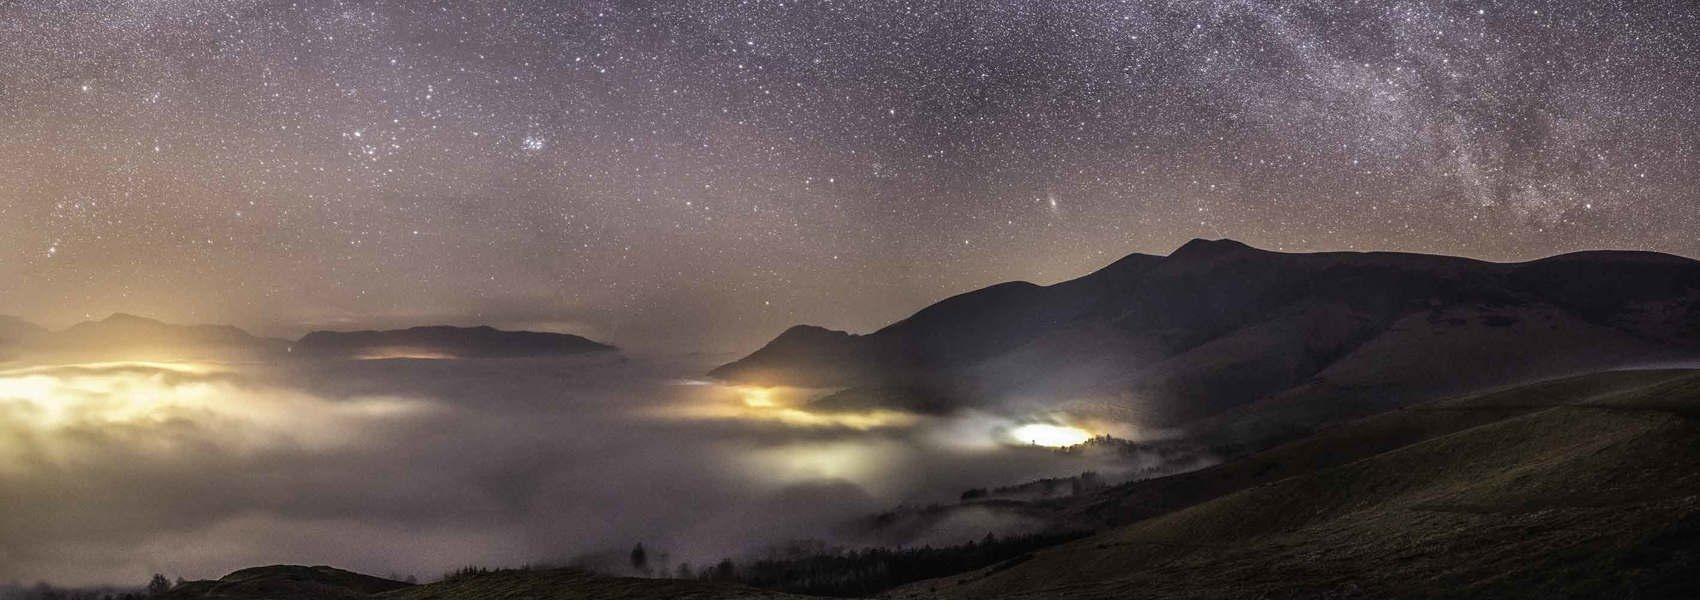 Call for Legislation to Tackle Increasing Light Pollution